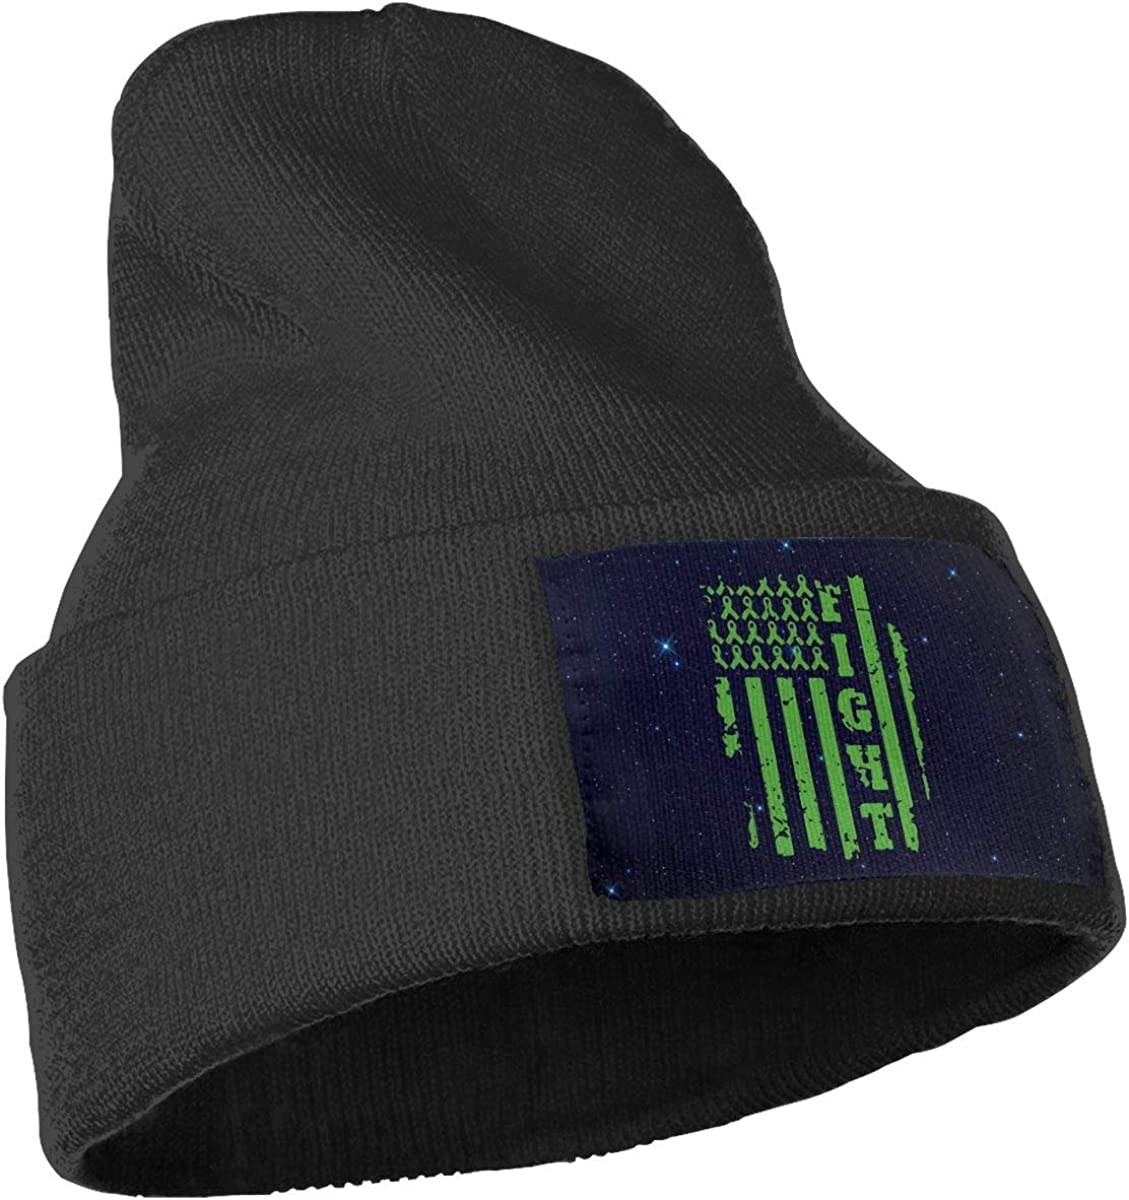 COLLJL-8 Men//Women Bile Duct Cancer Awareness Outdoor Fashion Knit Beanies Hat Soft Winter Knit Caps